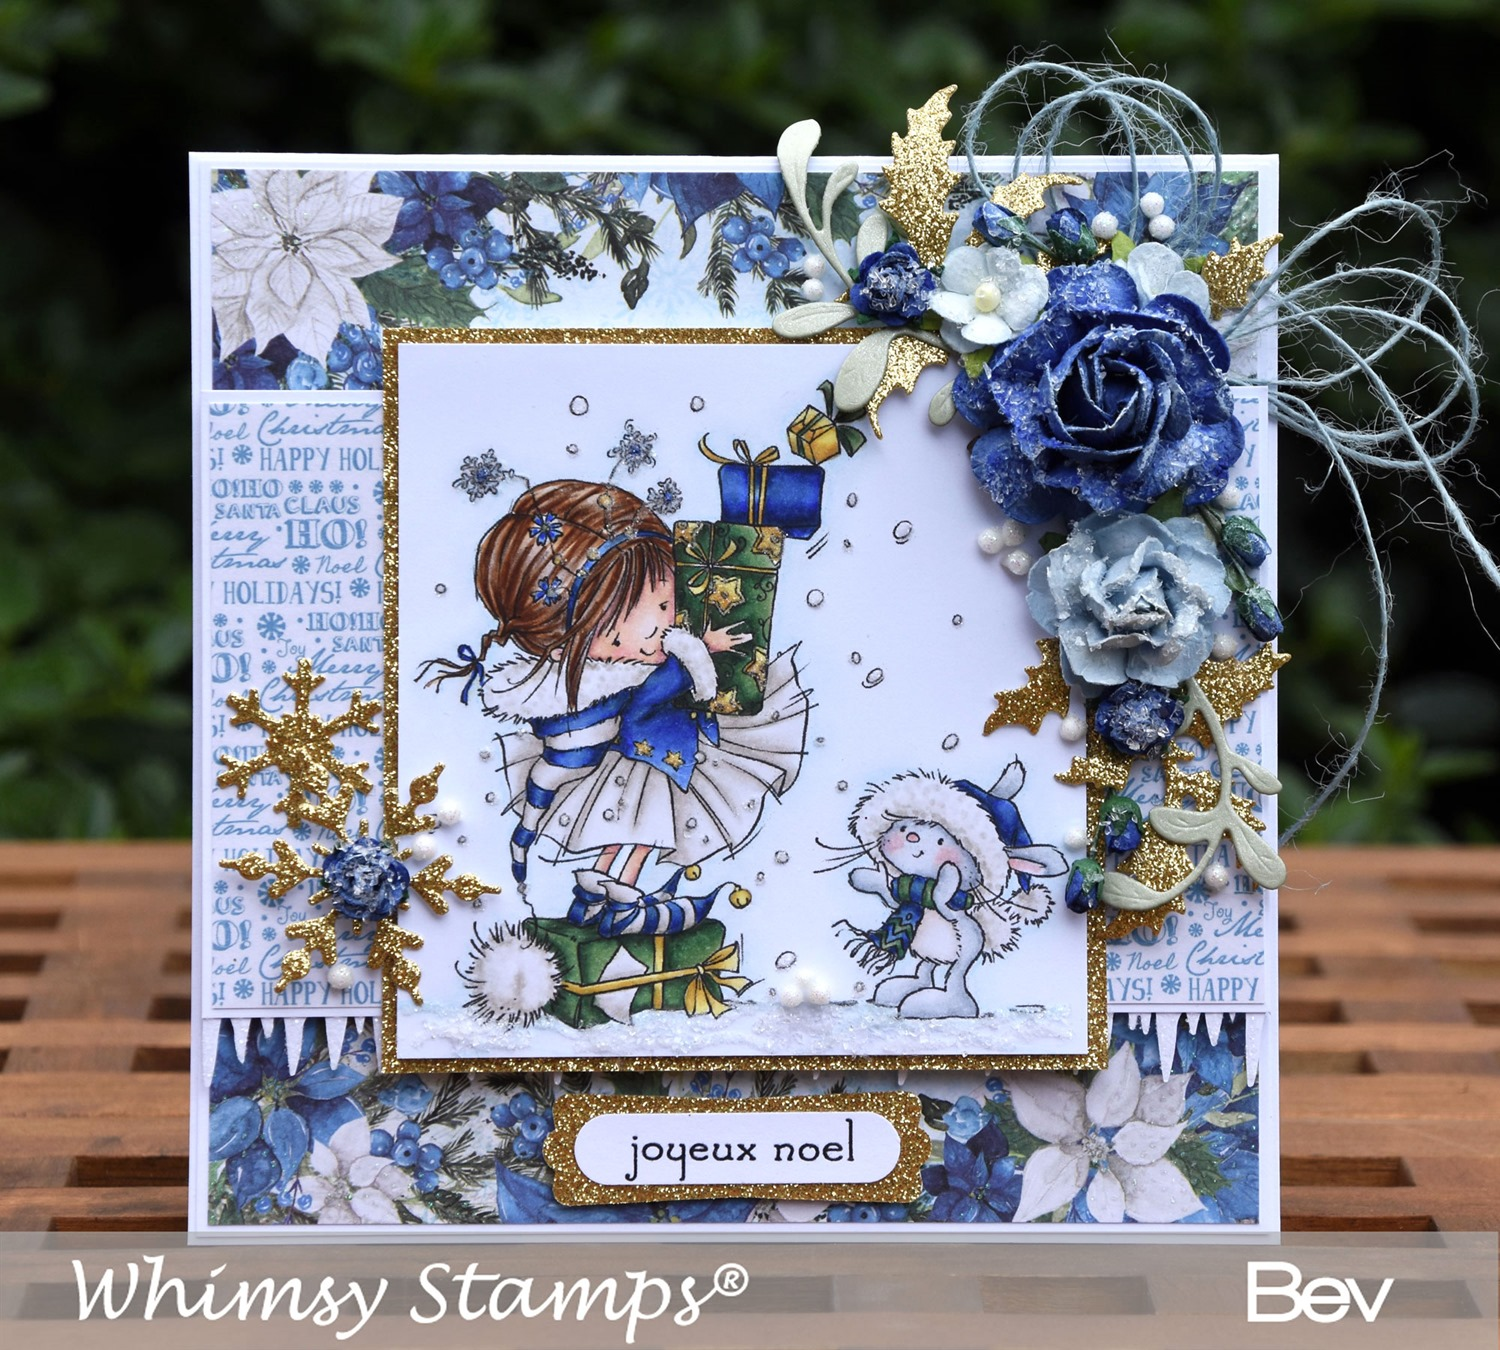 [bev-rochester-whimsy-stamps-winter-friends%5B5%5D]